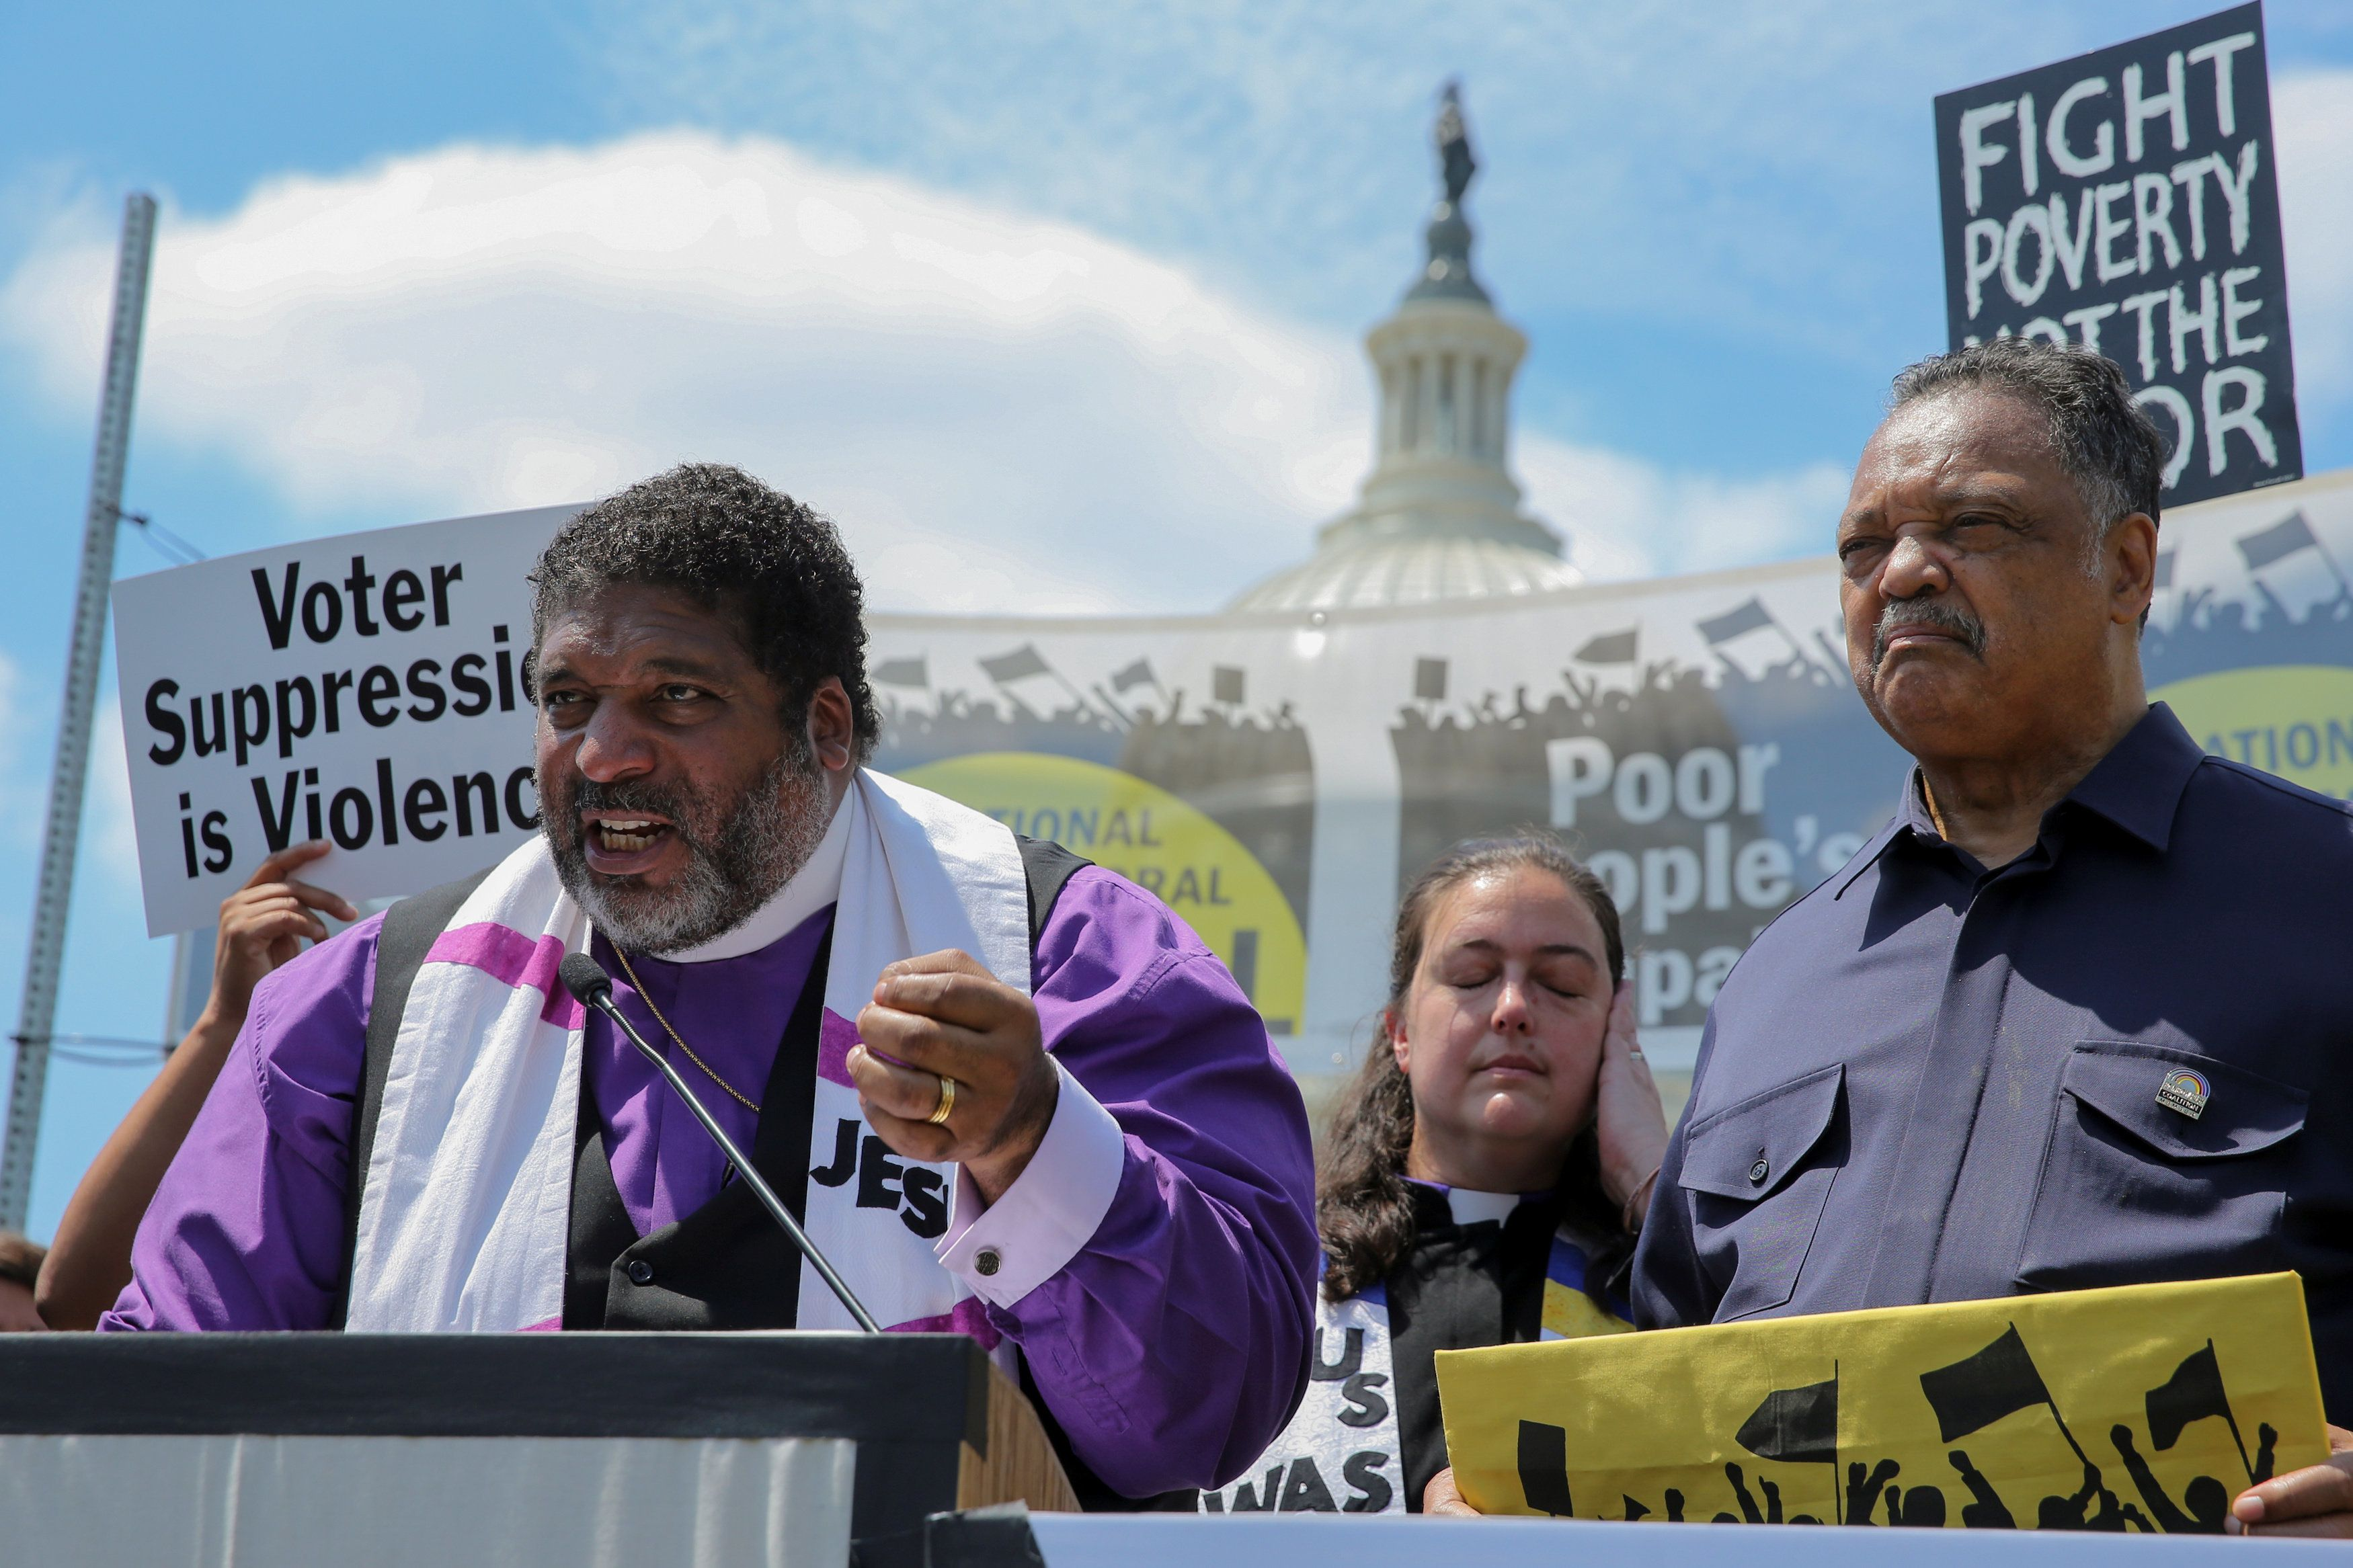 The Poor People's Campaign Is Using Civil Disobedience to Win Back